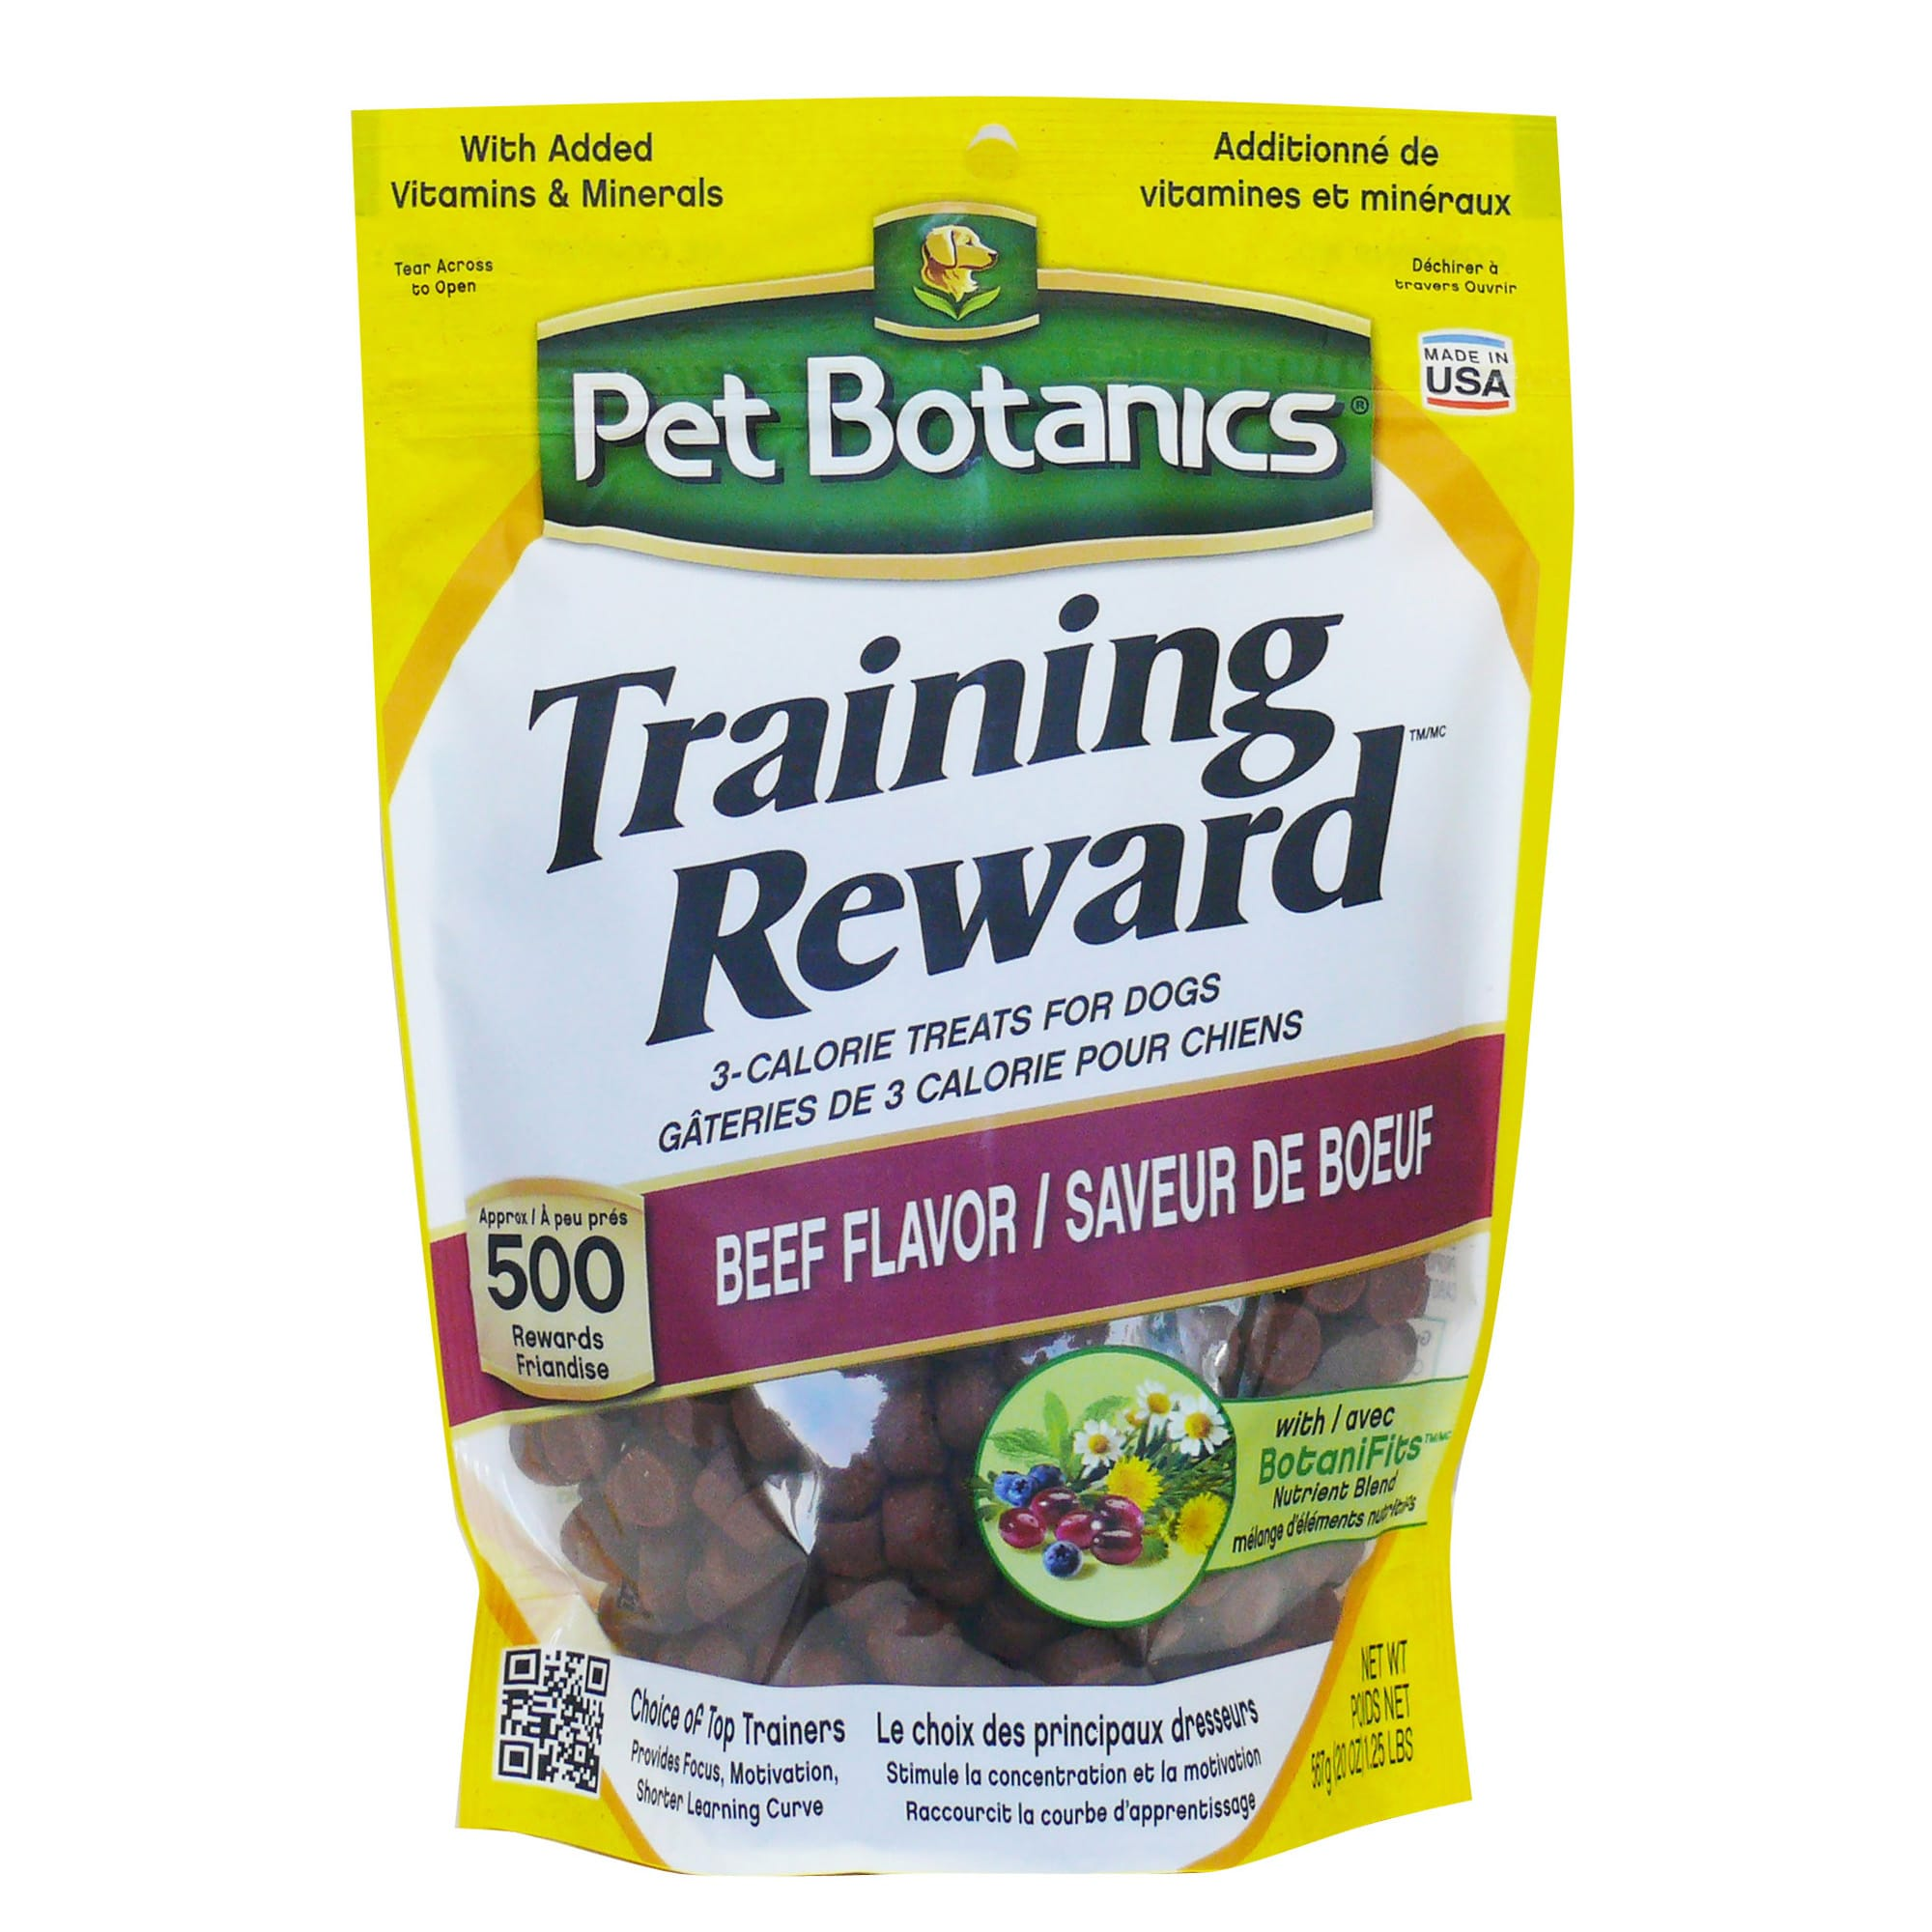 Pet Botanics Training Reward Beef Flavor Dog Treats